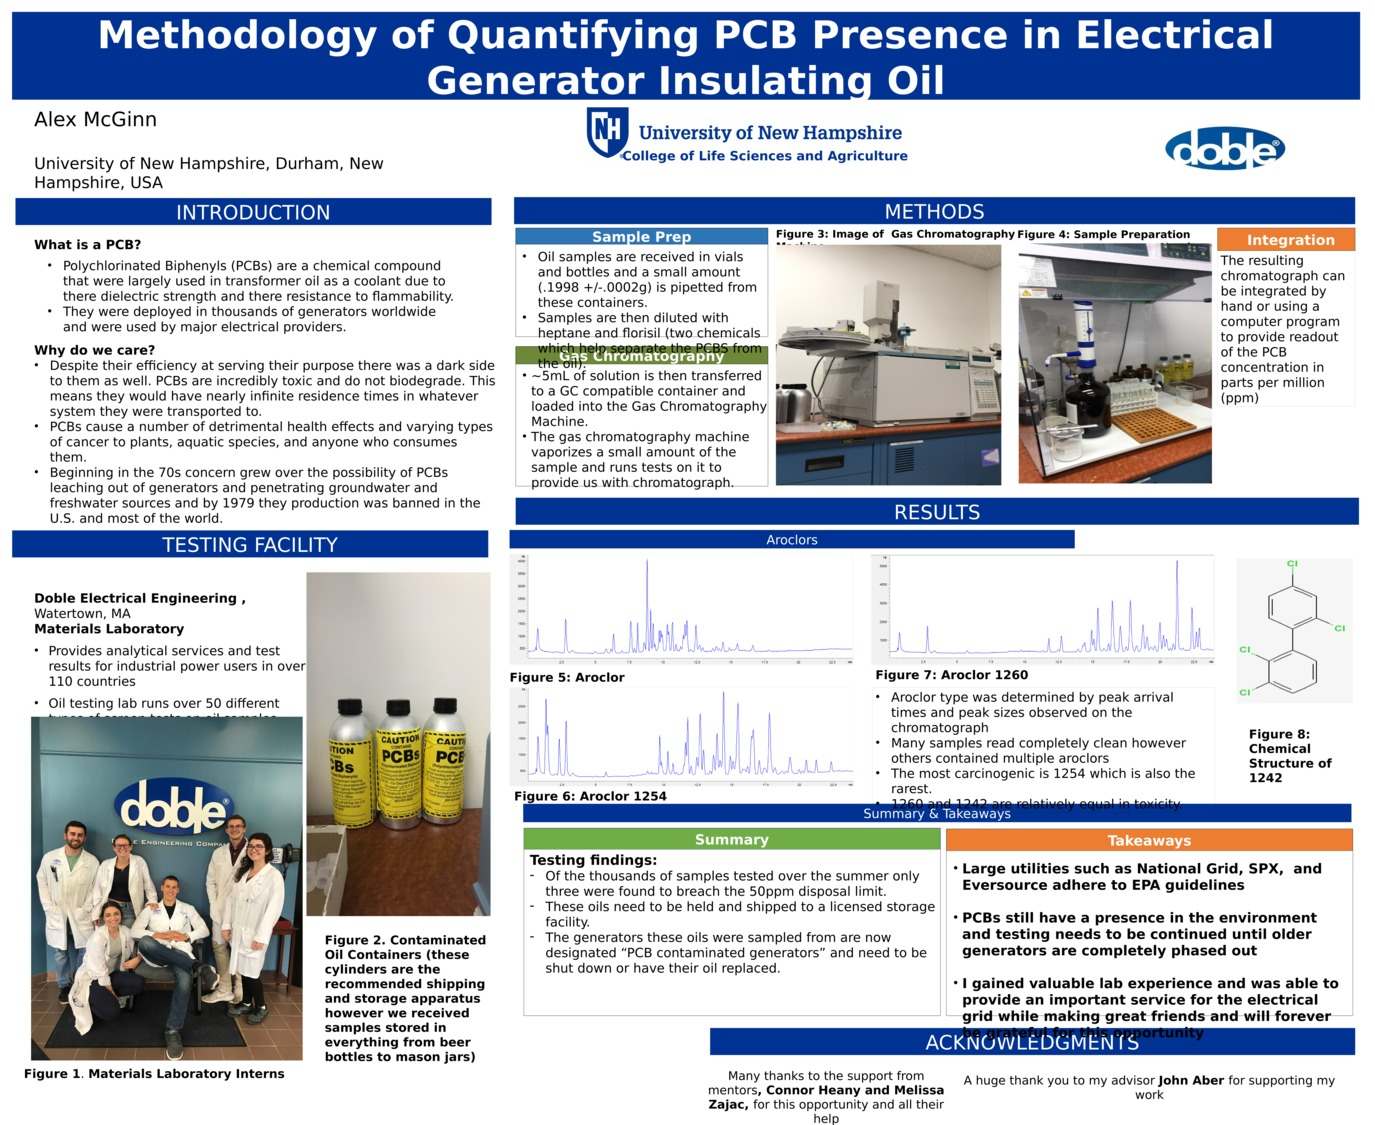 Methodology Of Quantifying Pcb Presence In Electrical Generator Insulating Oil by ajm1028